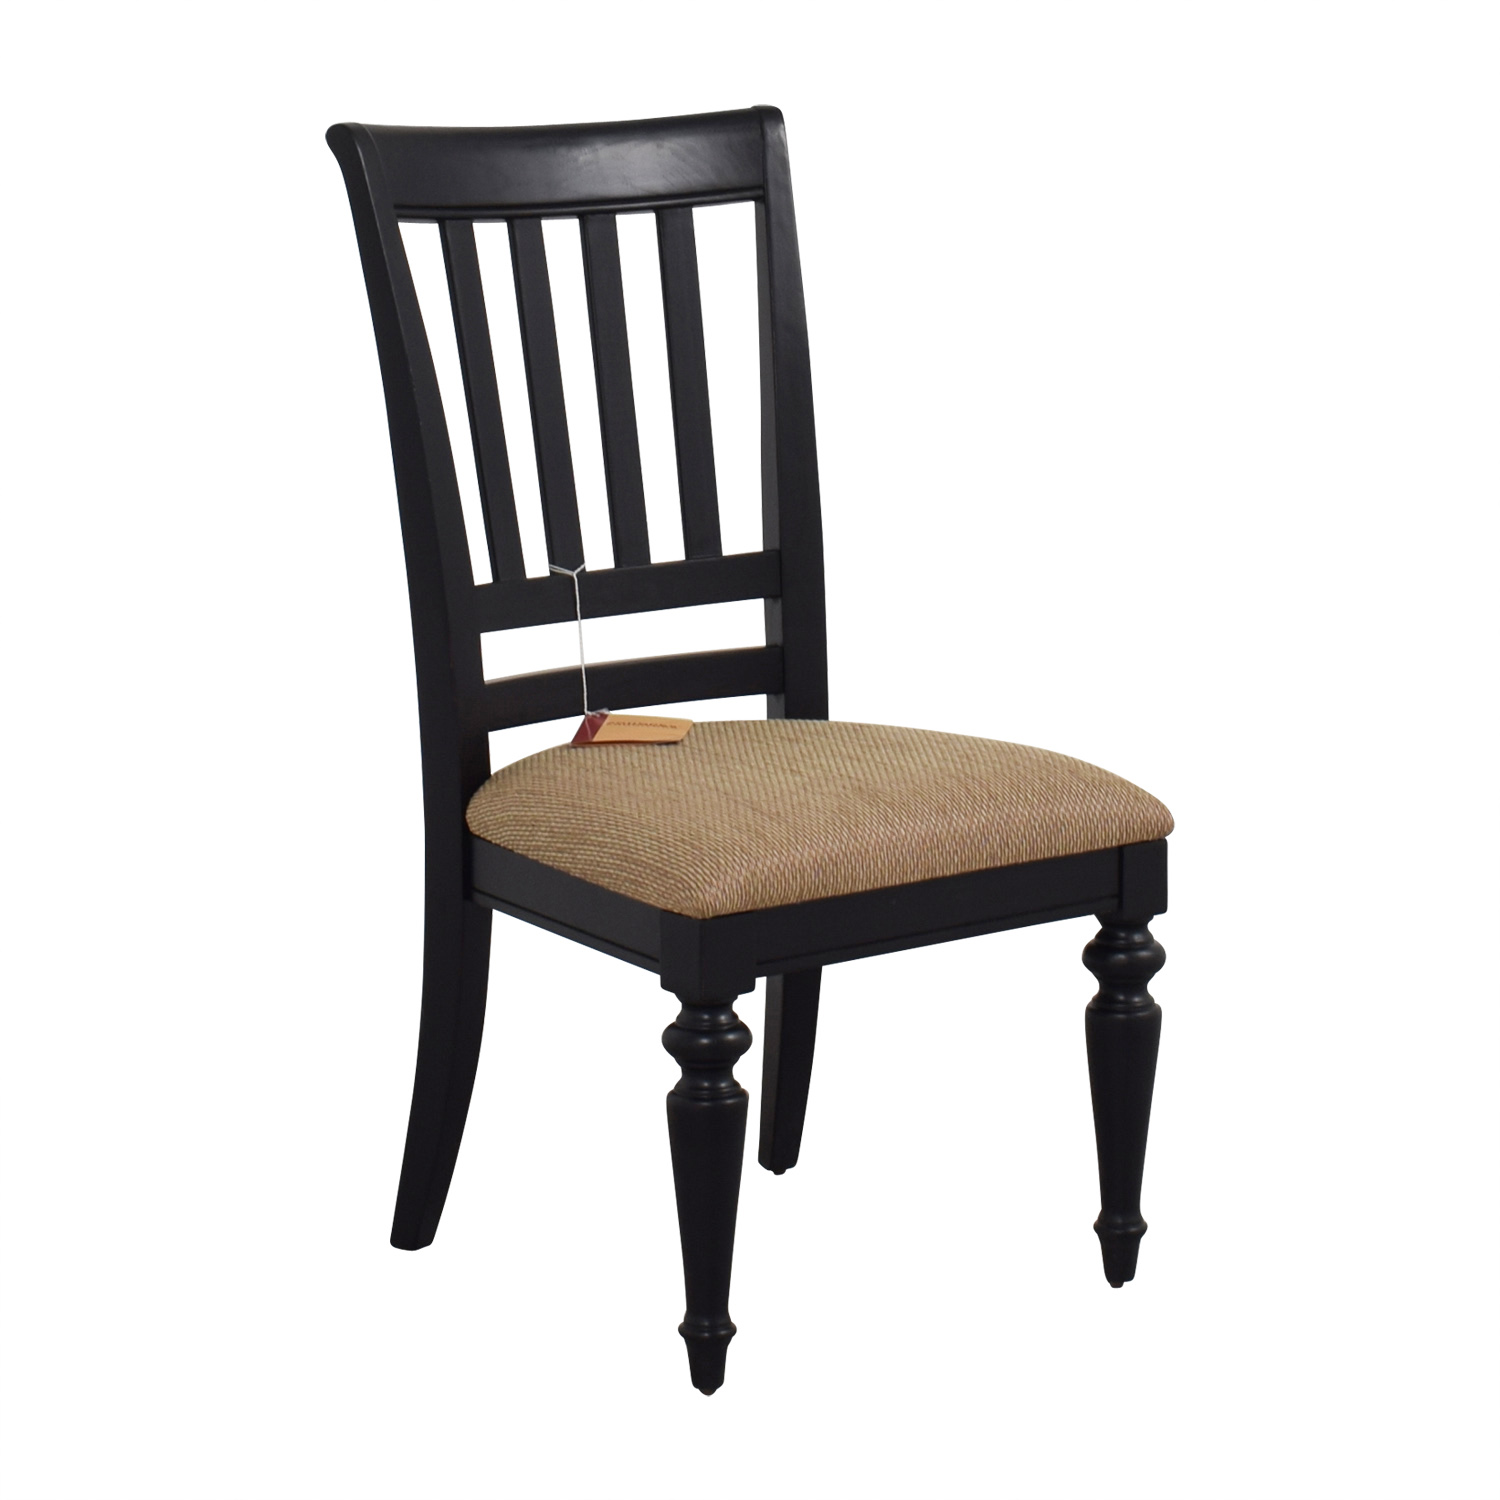 shop Poundex Furniture Black Chair with Padded Seat Poundex Furniture Dining Chairs